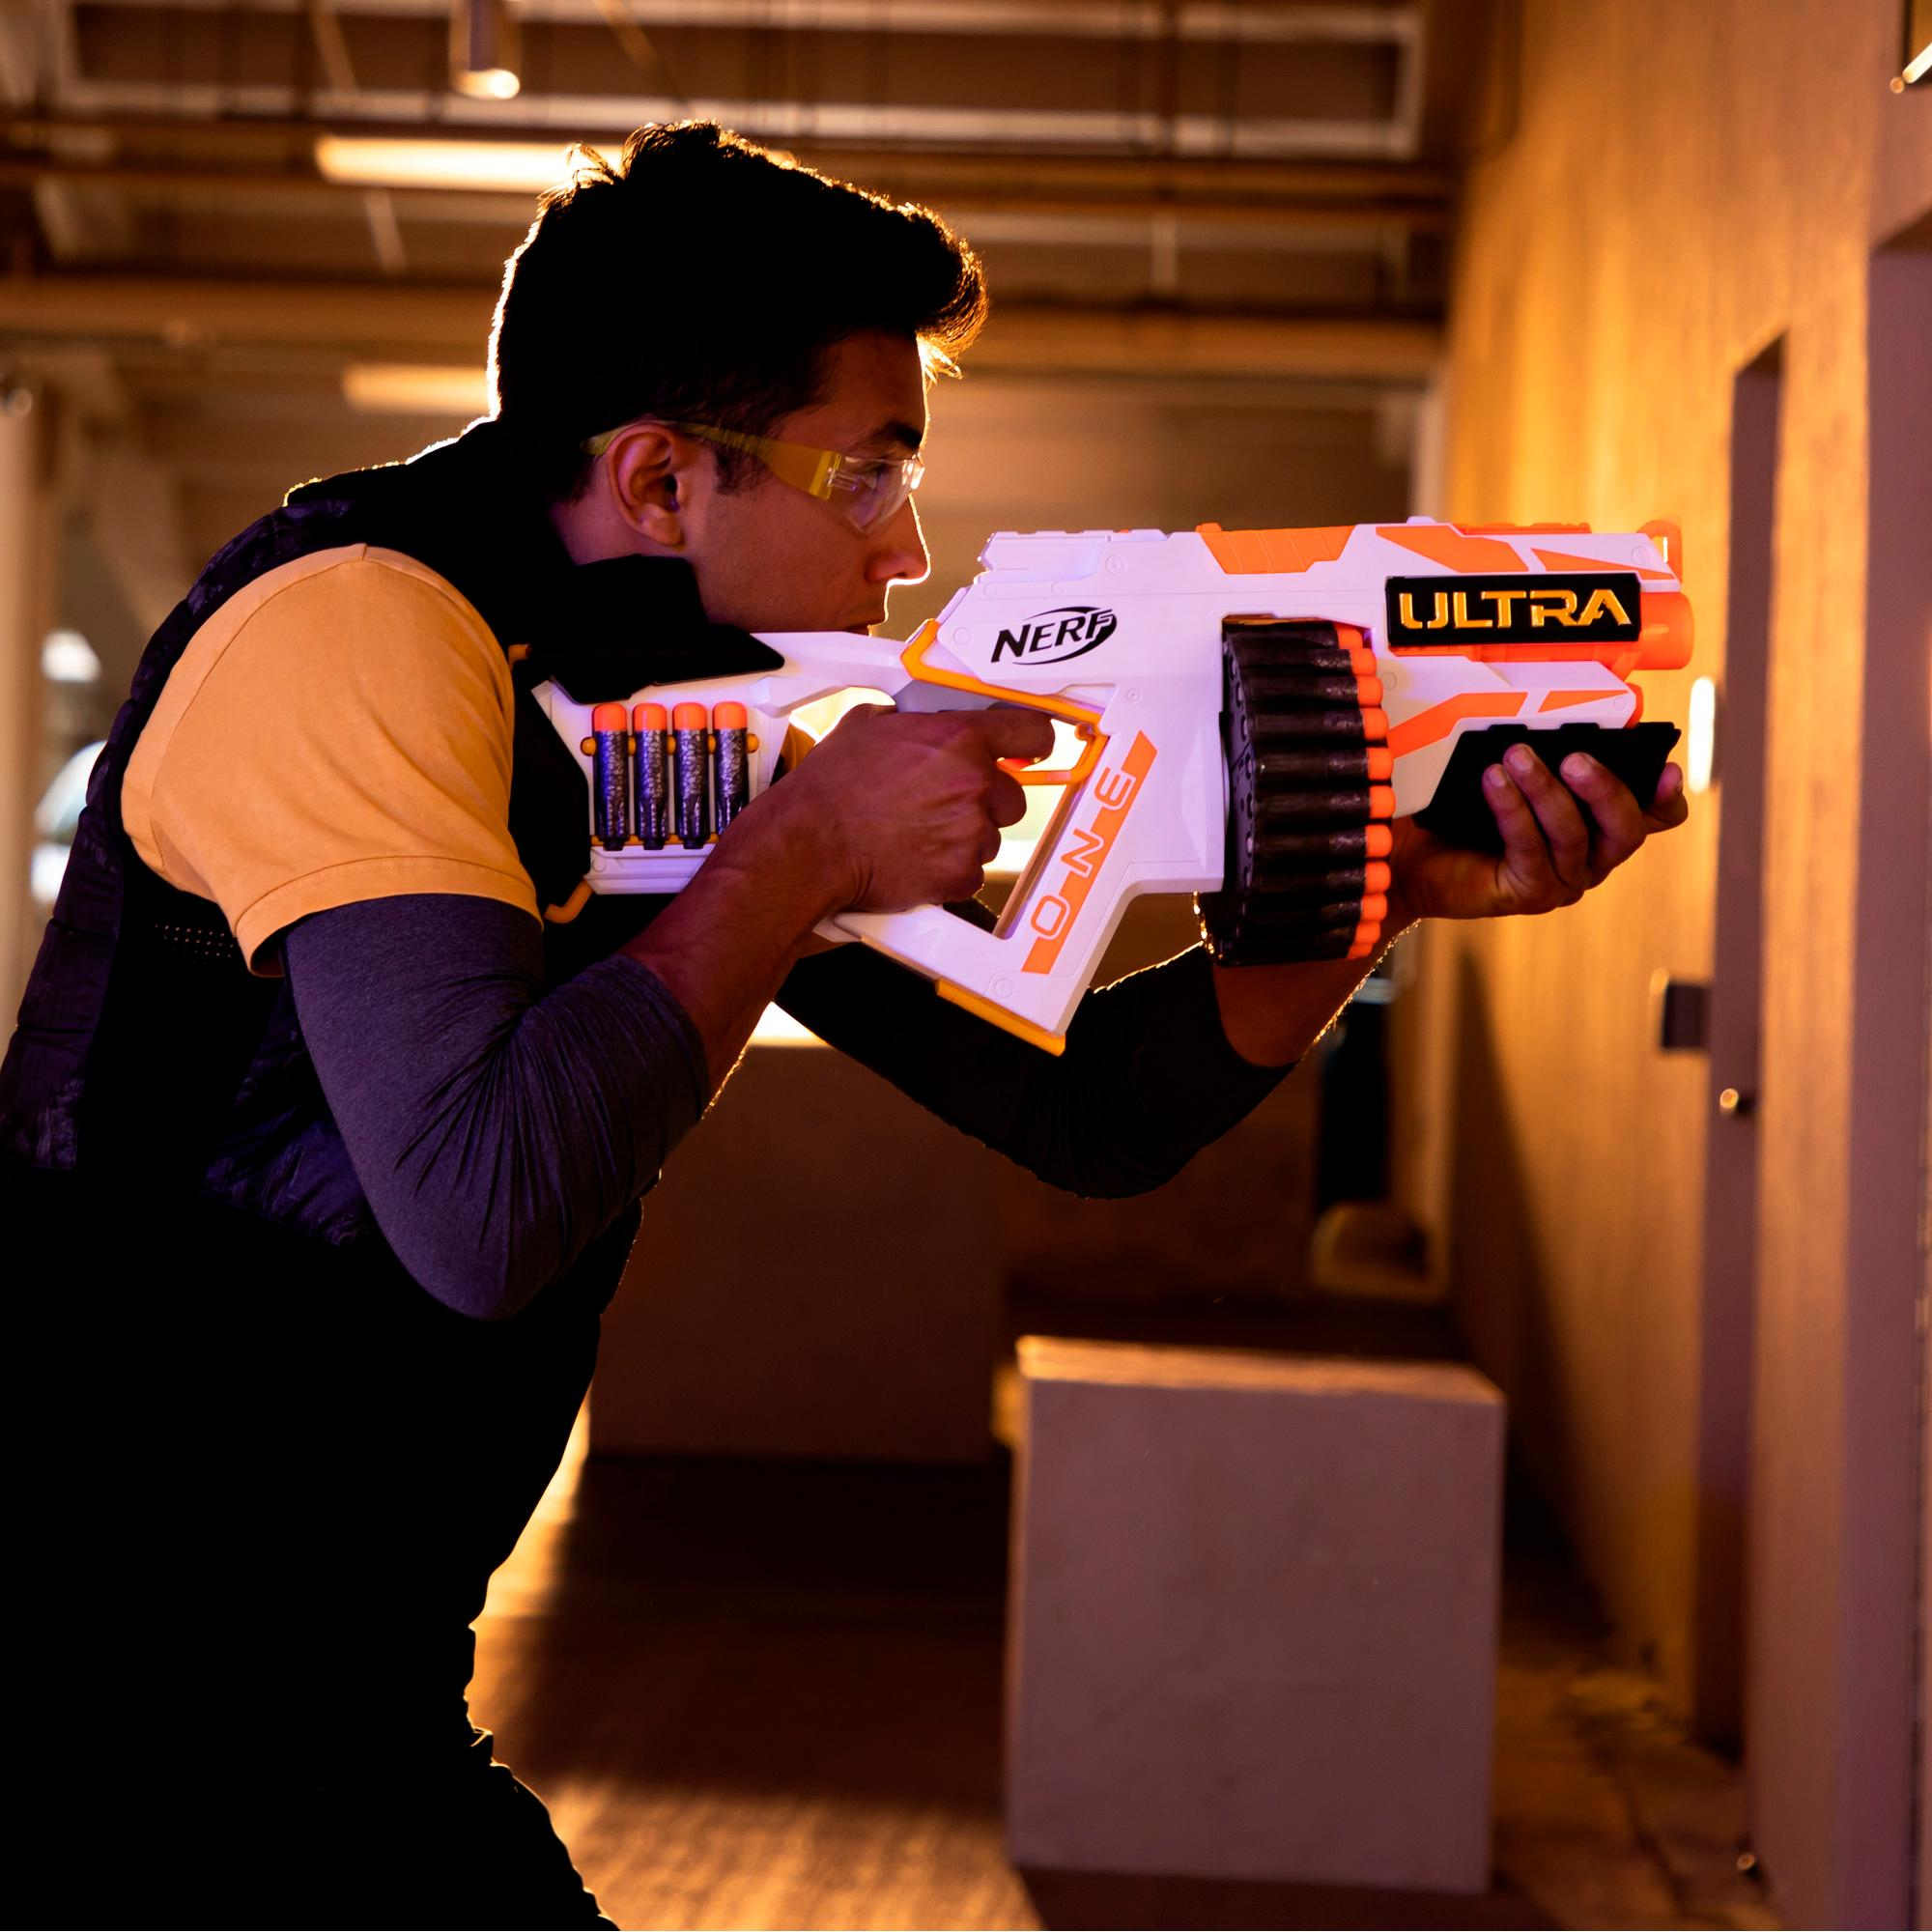 Nerf Ultra One Motorized Blaster -- High Capacity Drum -- 25 Official Nerf Ultra Darts, the Farthest Flying Nerf Darts